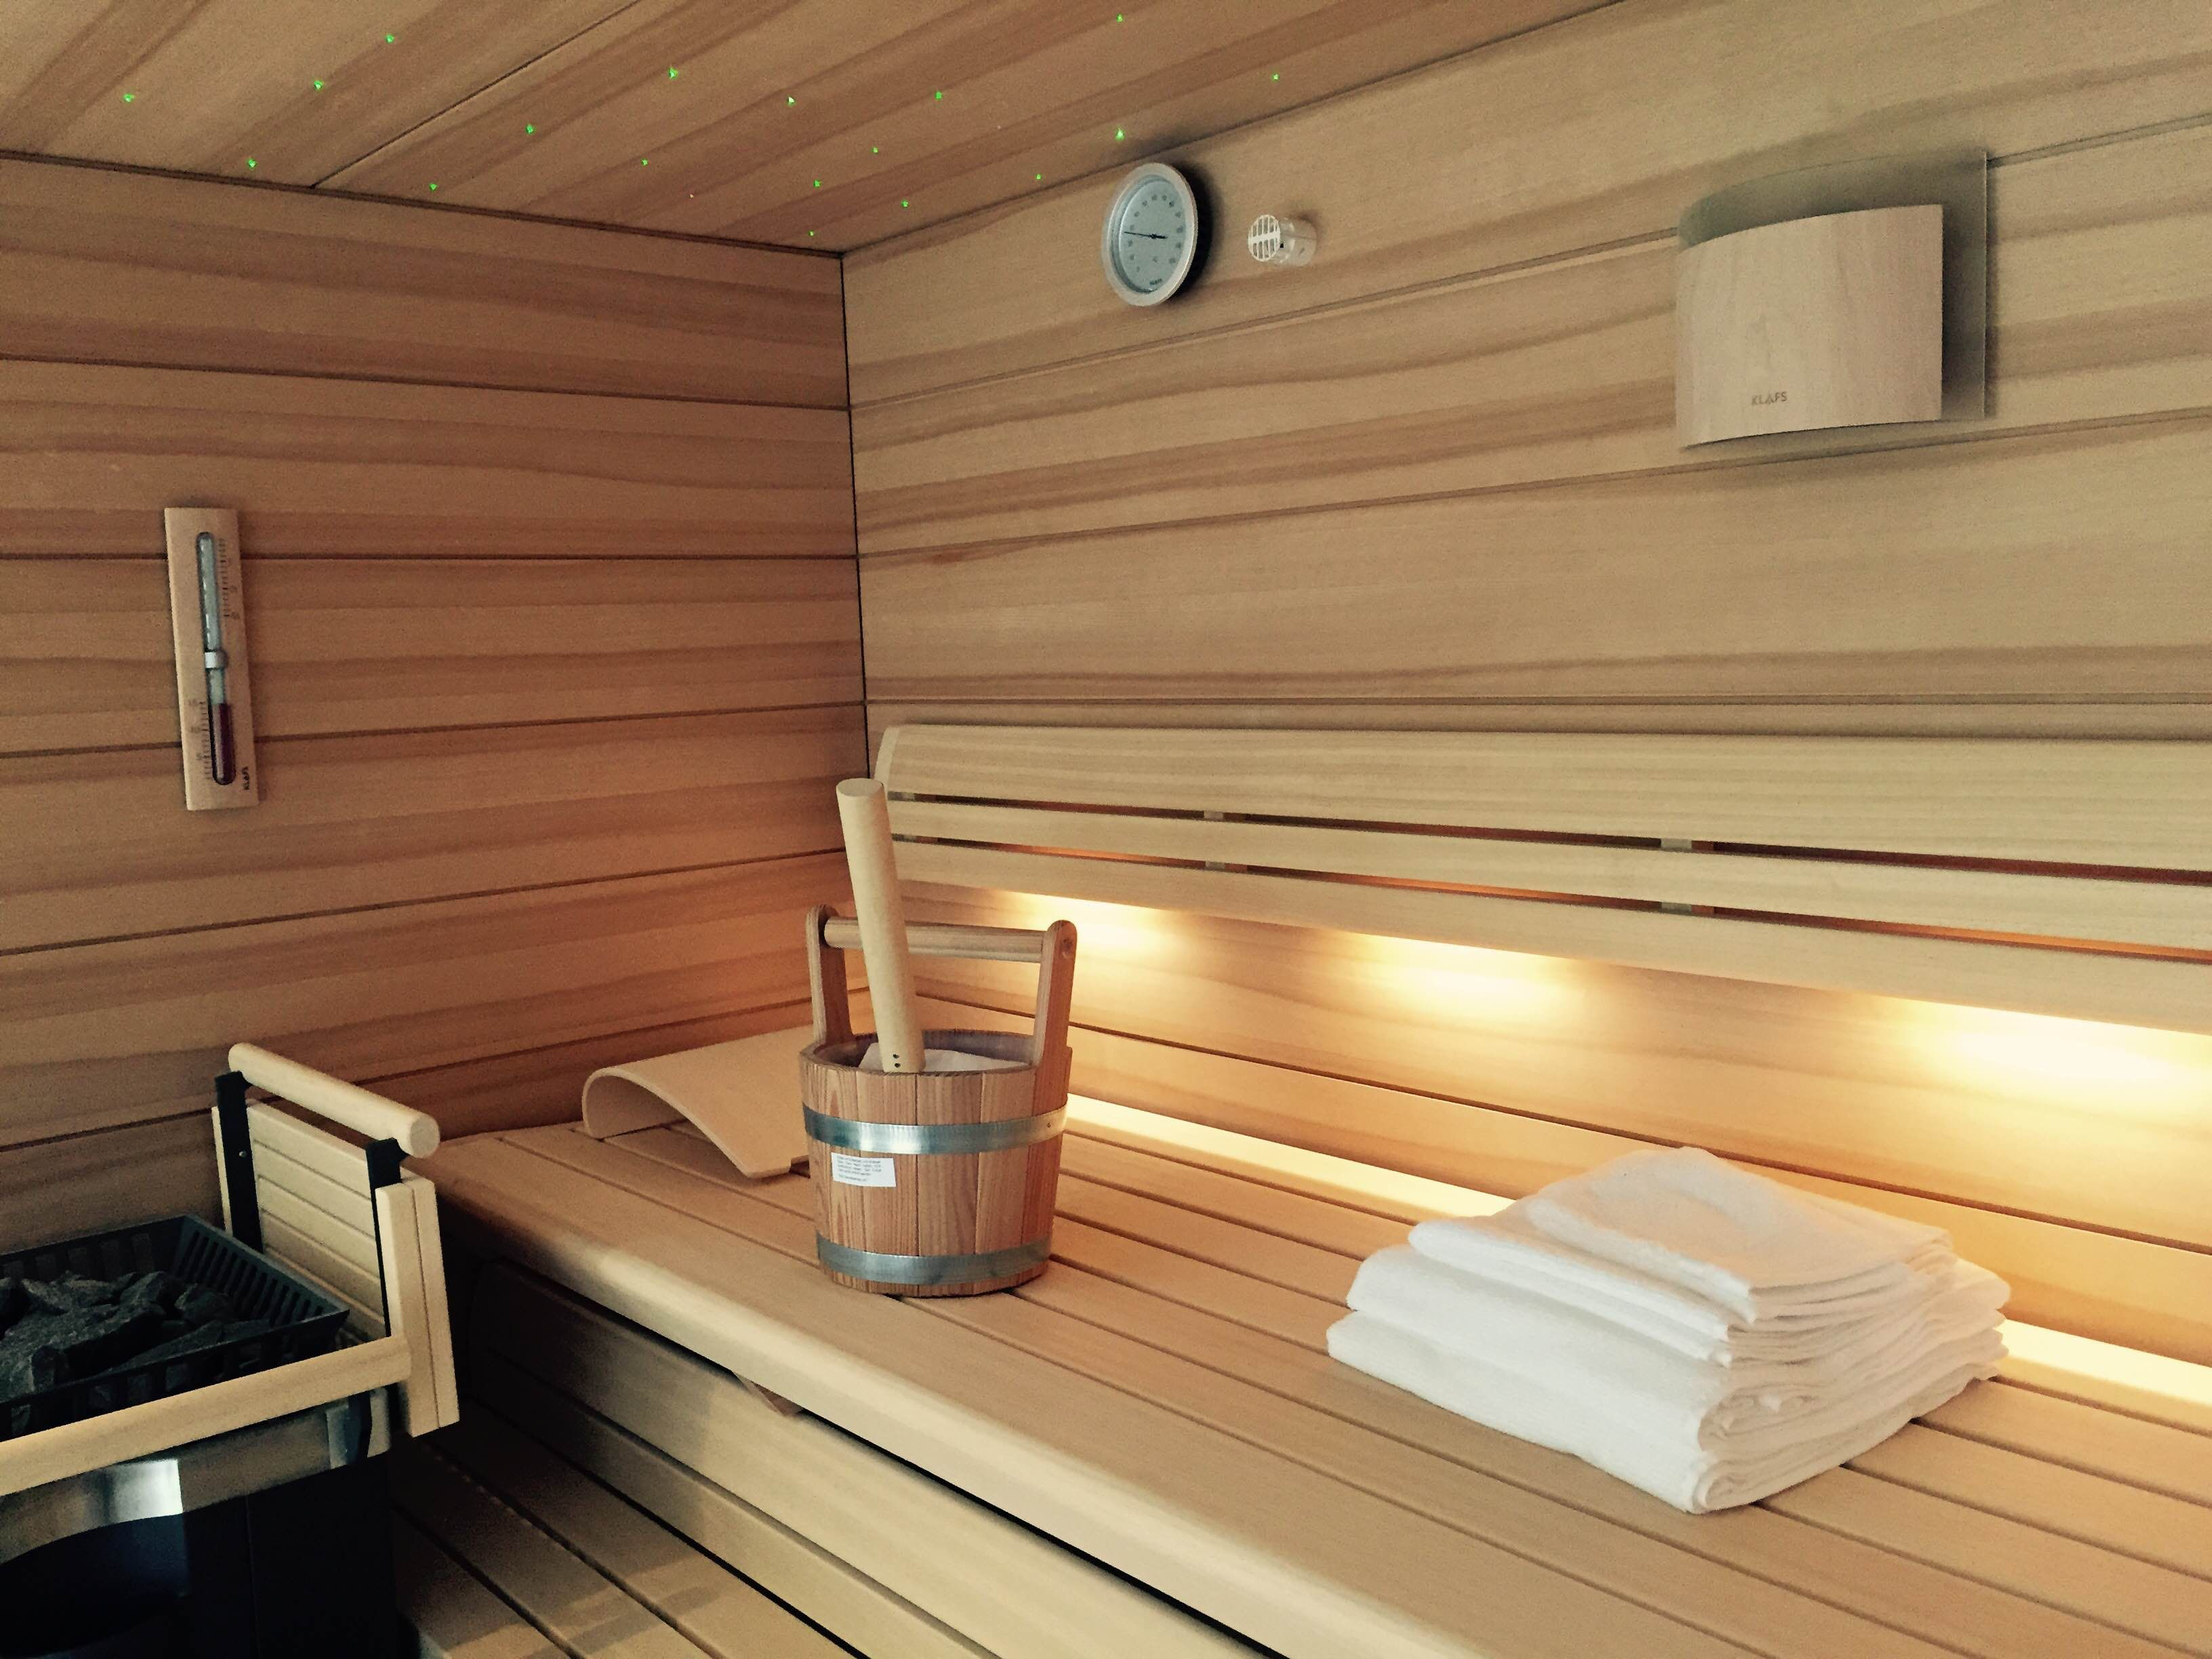 pin built fas glass steam finnish with through view wall sauna room